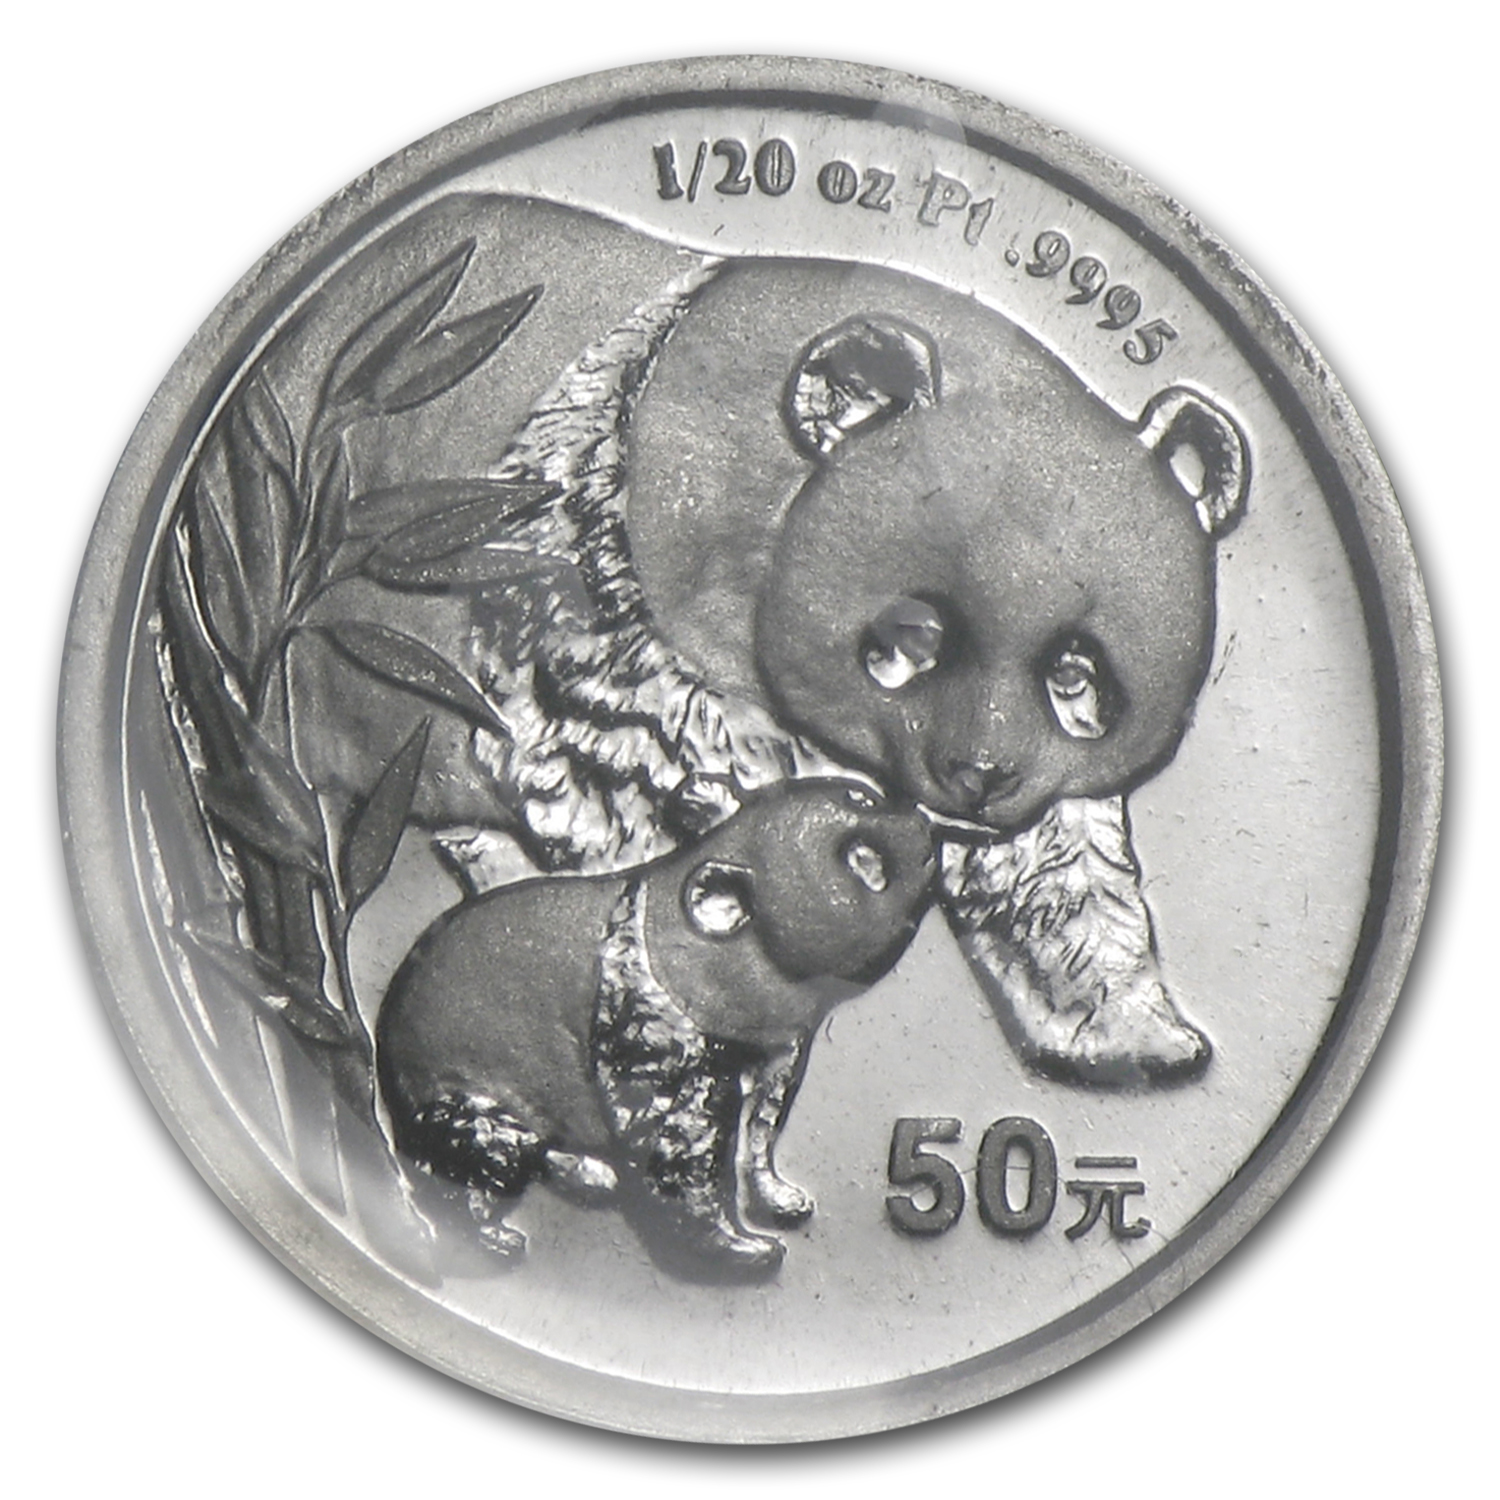 2004 China 1/20 oz Platinum Panda BU (Sealed)